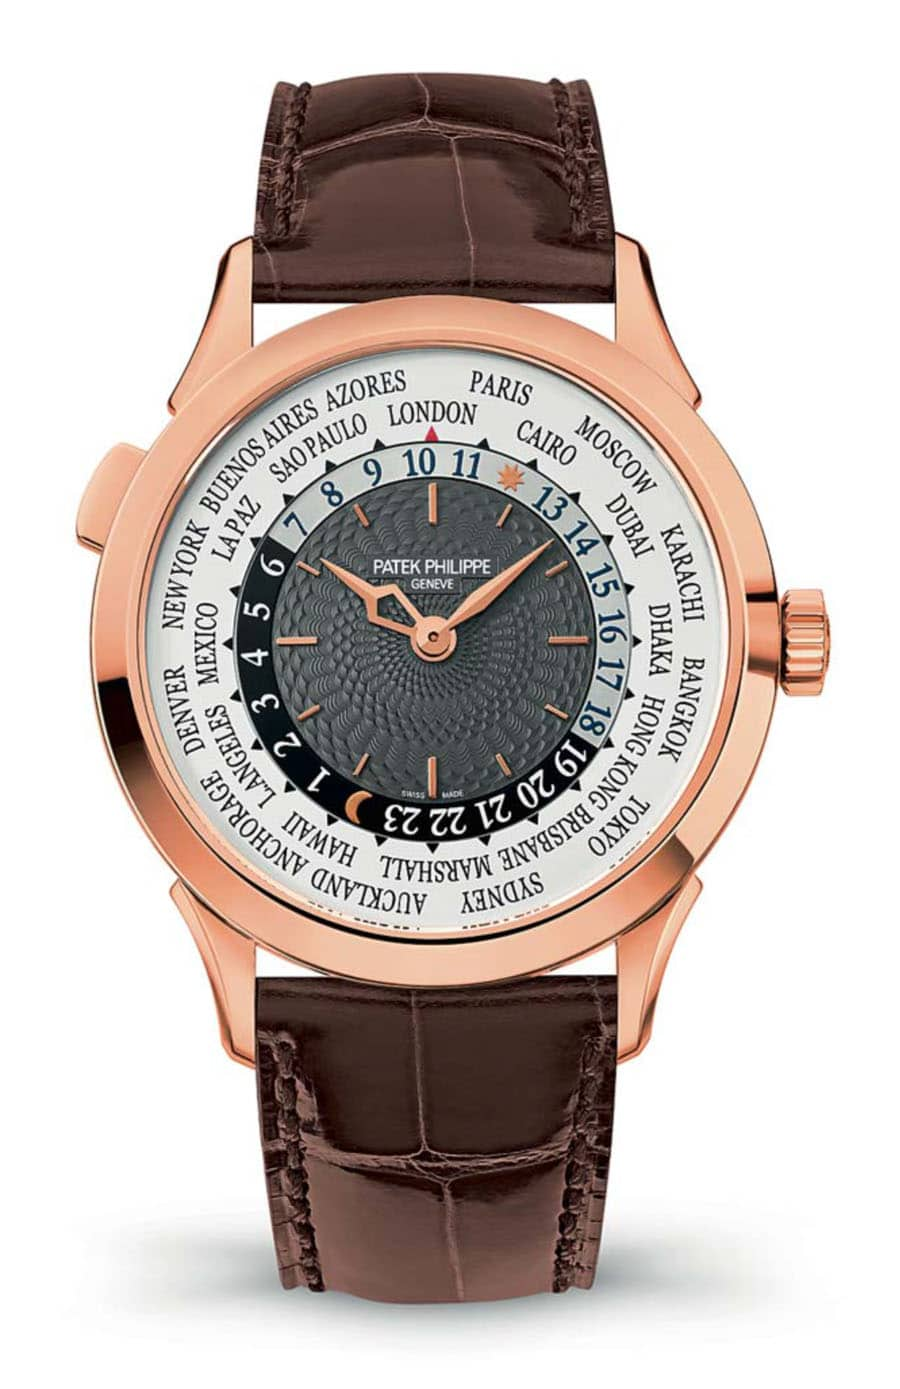 Patek Philippe: Complication Referenz 5230 in Roségold